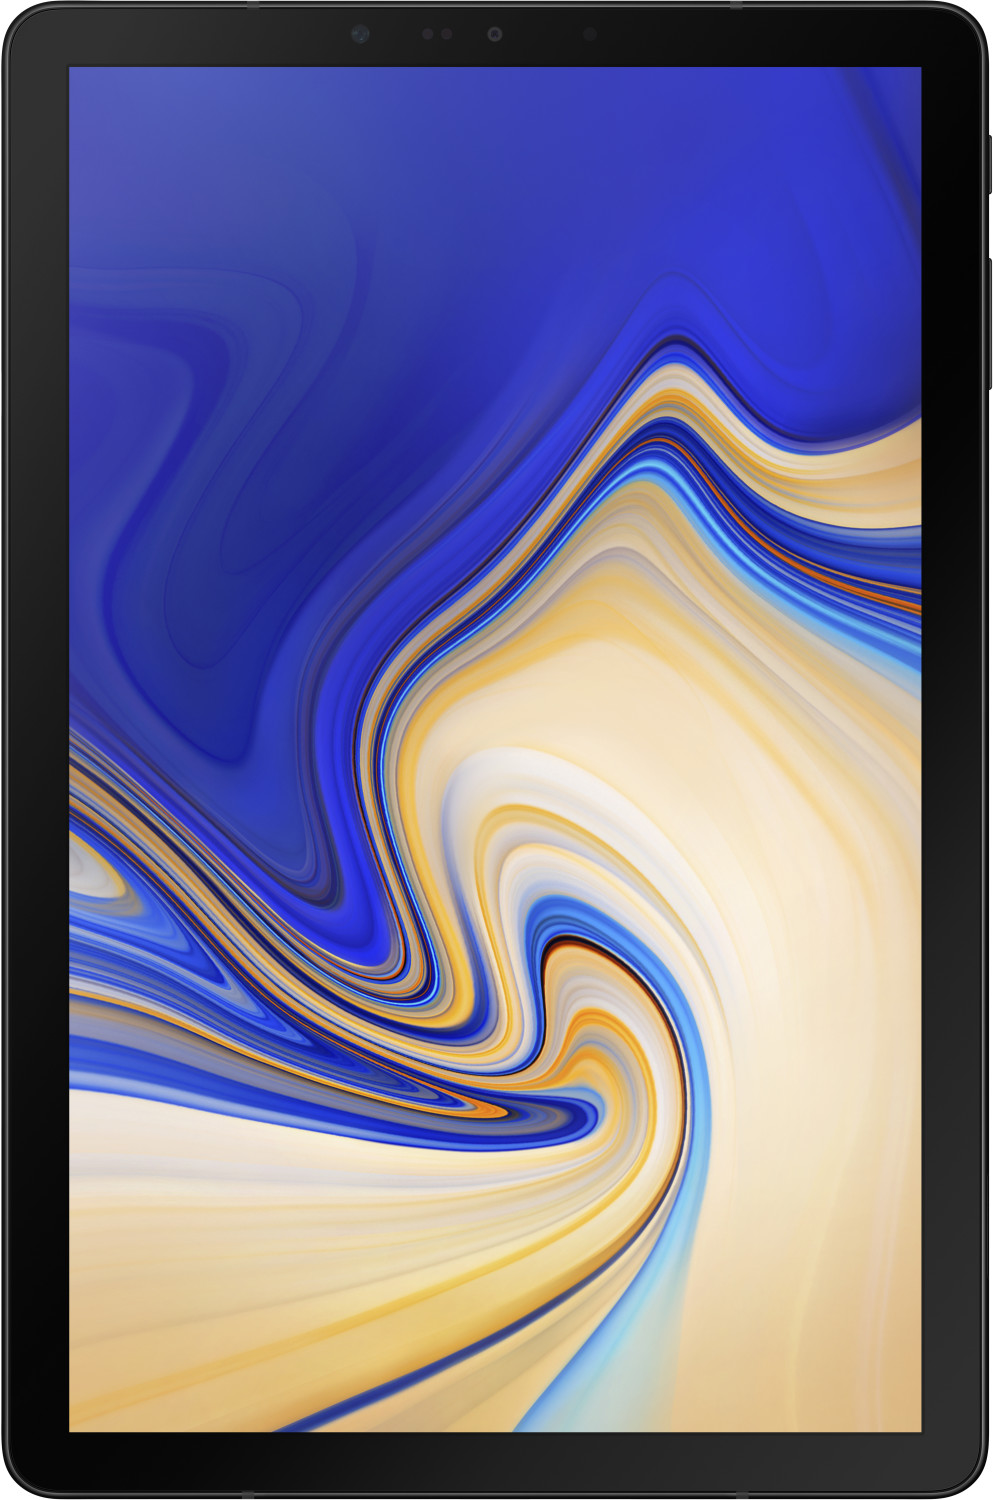 Image of Samsung Galaxy Tab S4 64GB LTE black